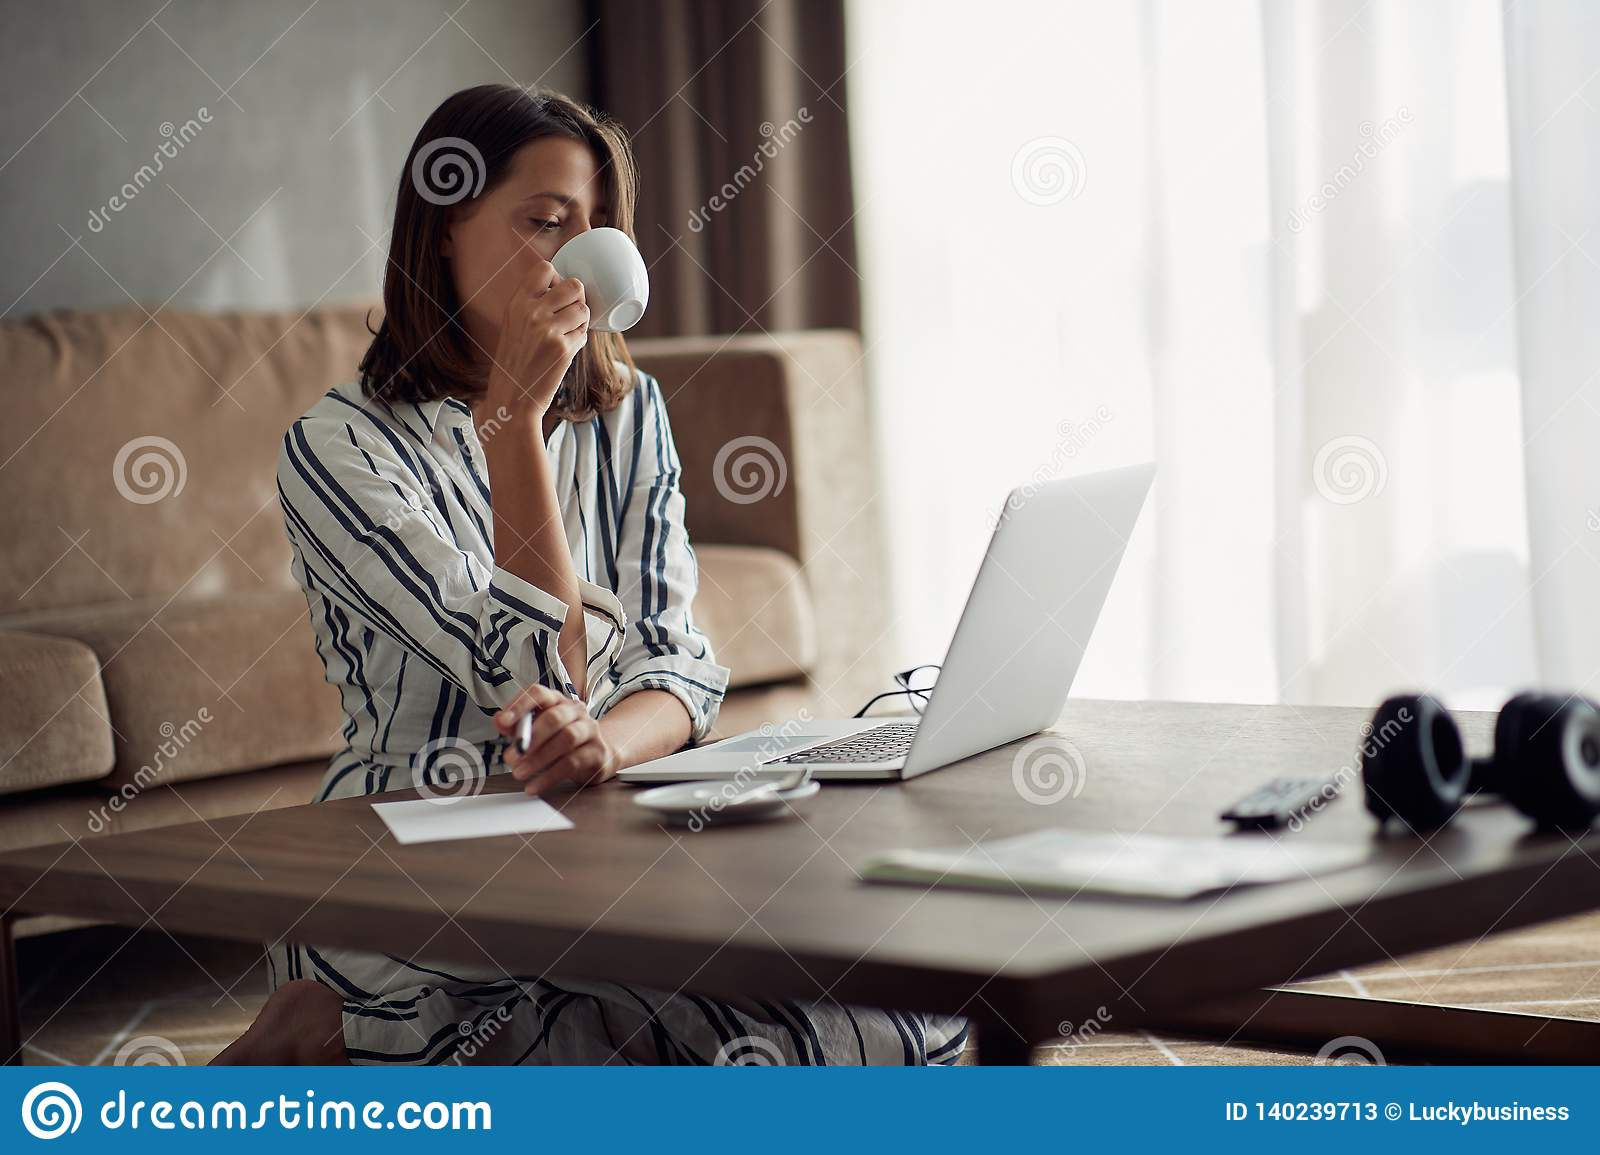 Exhausted woman working at home with a laptop and drinking coffee